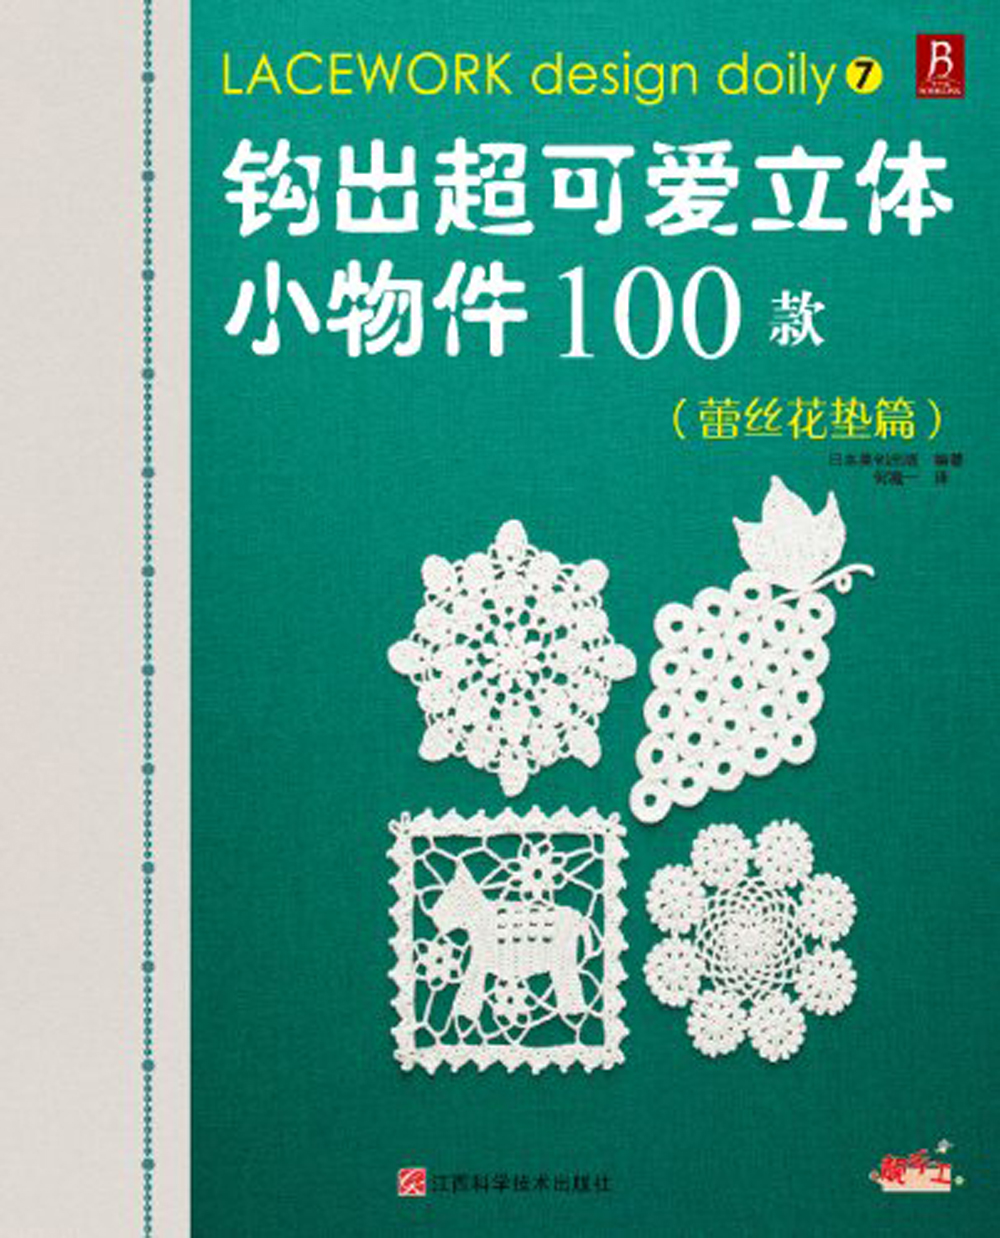 Lacework Design Doily / Weaving Super-cute 3d Small Objects 100 Models Chinese Knitting Book / Handmade Carft Book